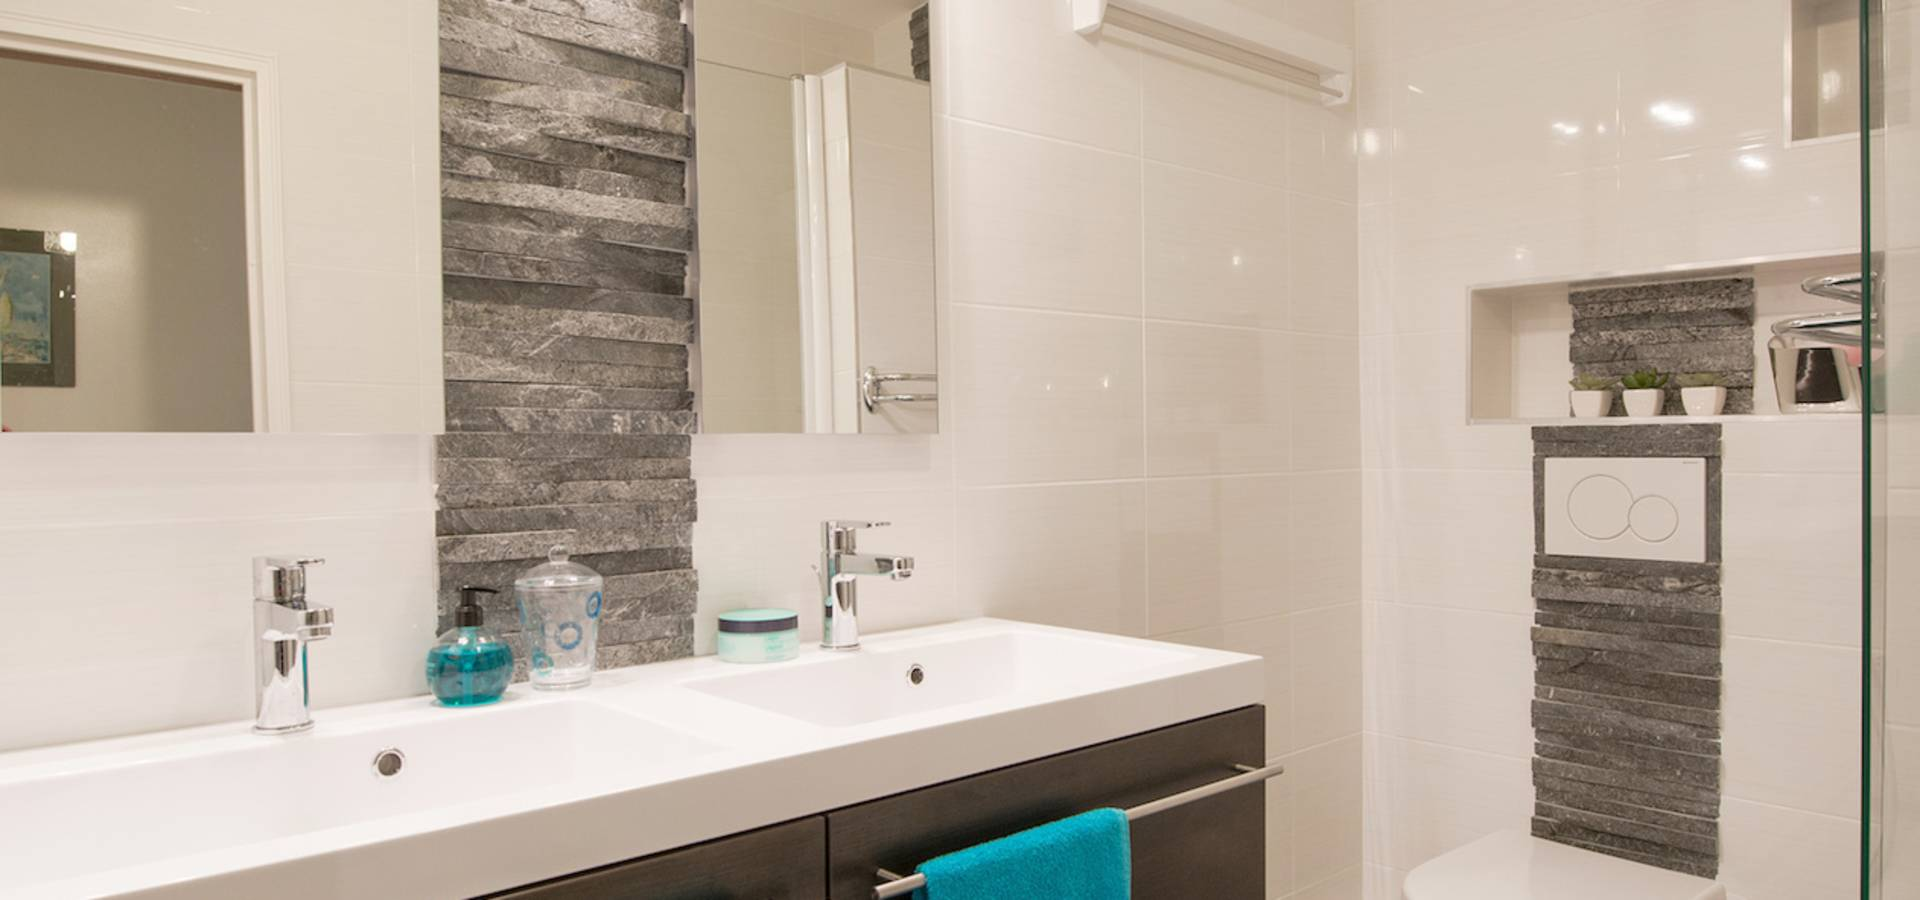 Am by annie mazuy architectes d 39 int rieur lyon sur homify for Salle de bain parement